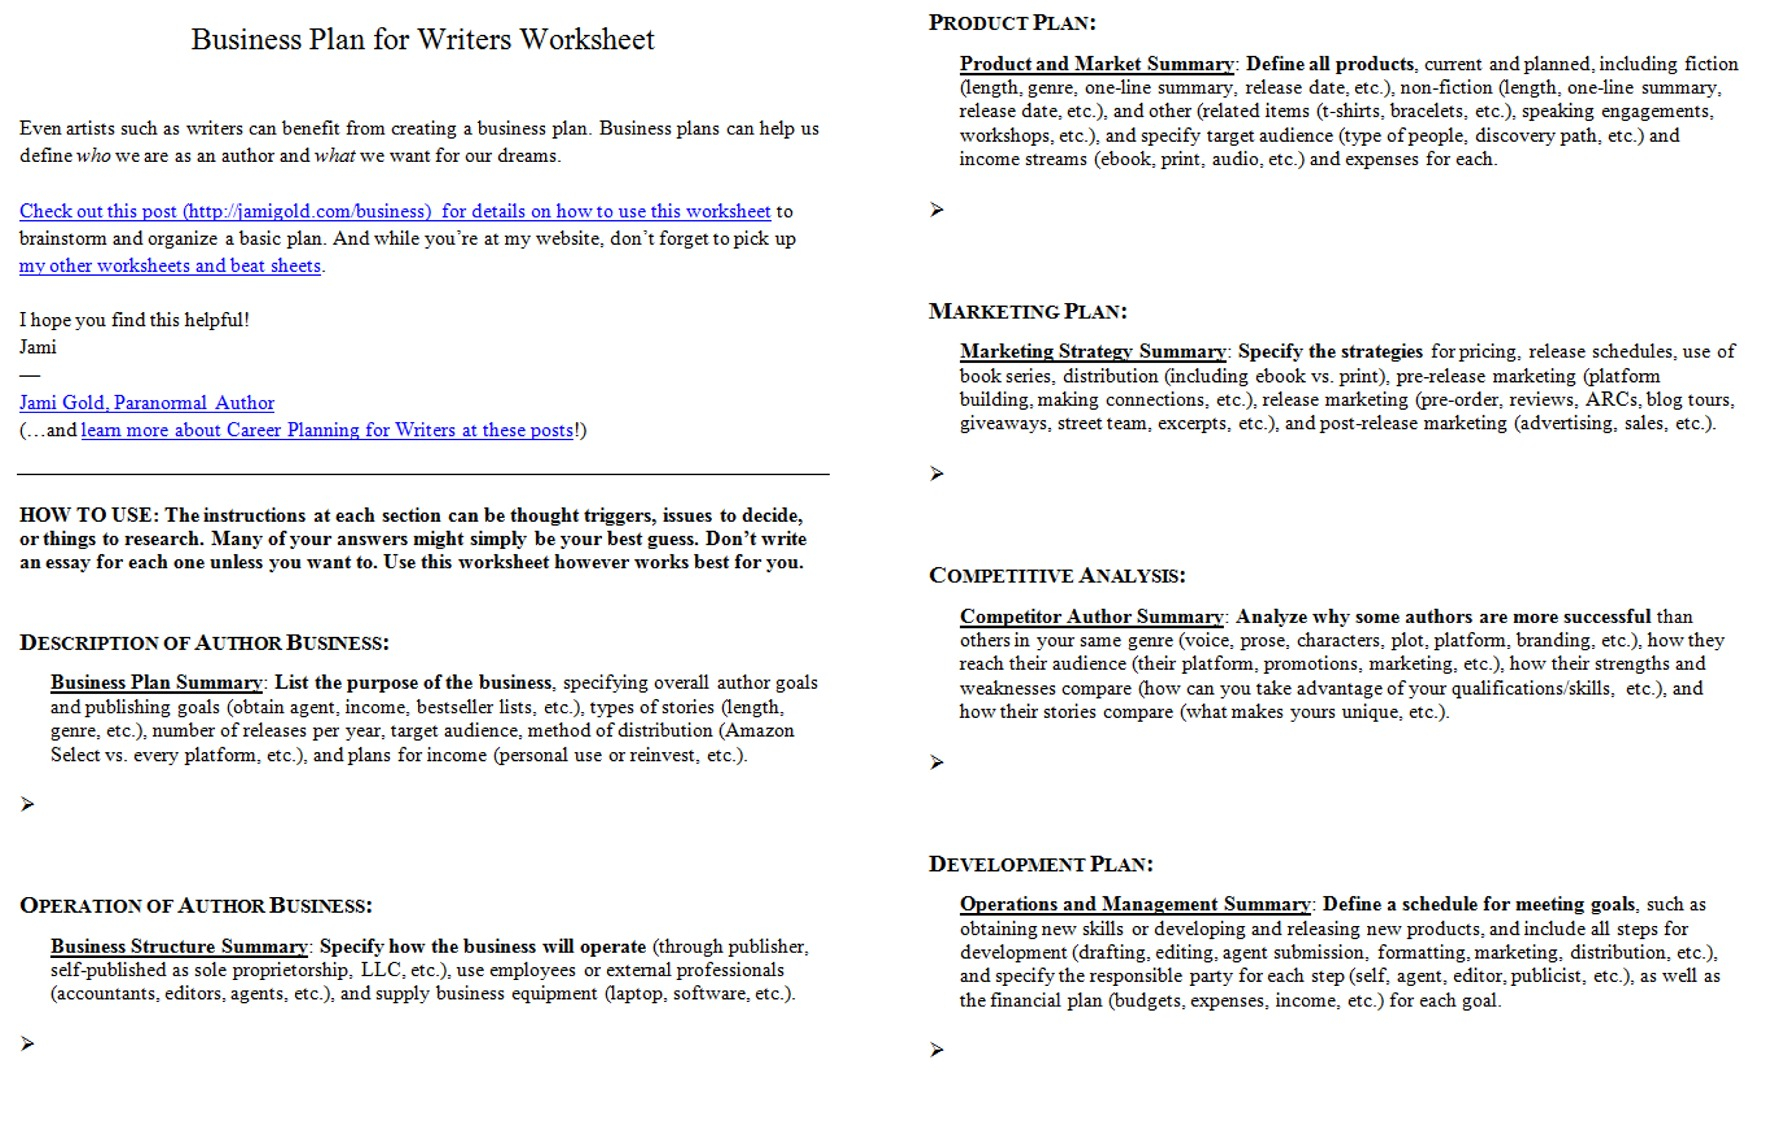 Aldiablosus  Pleasing Worksheets For Writers  Jami Gold Paranormal Author With Inspiring Screen Shot Of Both Pages Of The Business Plan For Writers Worksheet With Amusing Solving Systems Of Equations By Graphing Worksheet Answers Also Multiplying Integers Worksheet In Addition I Have Rights Worksheet Answers And Cell Cycle And Mitosis Worksheet As Well As Karyotype Worksheet Answers Additionally D Shapes Worksheets From Jamigoldcom With Aldiablosus  Inspiring Worksheets For Writers  Jami Gold Paranormal Author With Amusing Screen Shot Of Both Pages Of The Business Plan For Writers Worksheet And Pleasing Solving Systems Of Equations By Graphing Worksheet Answers Also Multiplying Integers Worksheet In Addition I Have Rights Worksheet Answers From Jamigoldcom